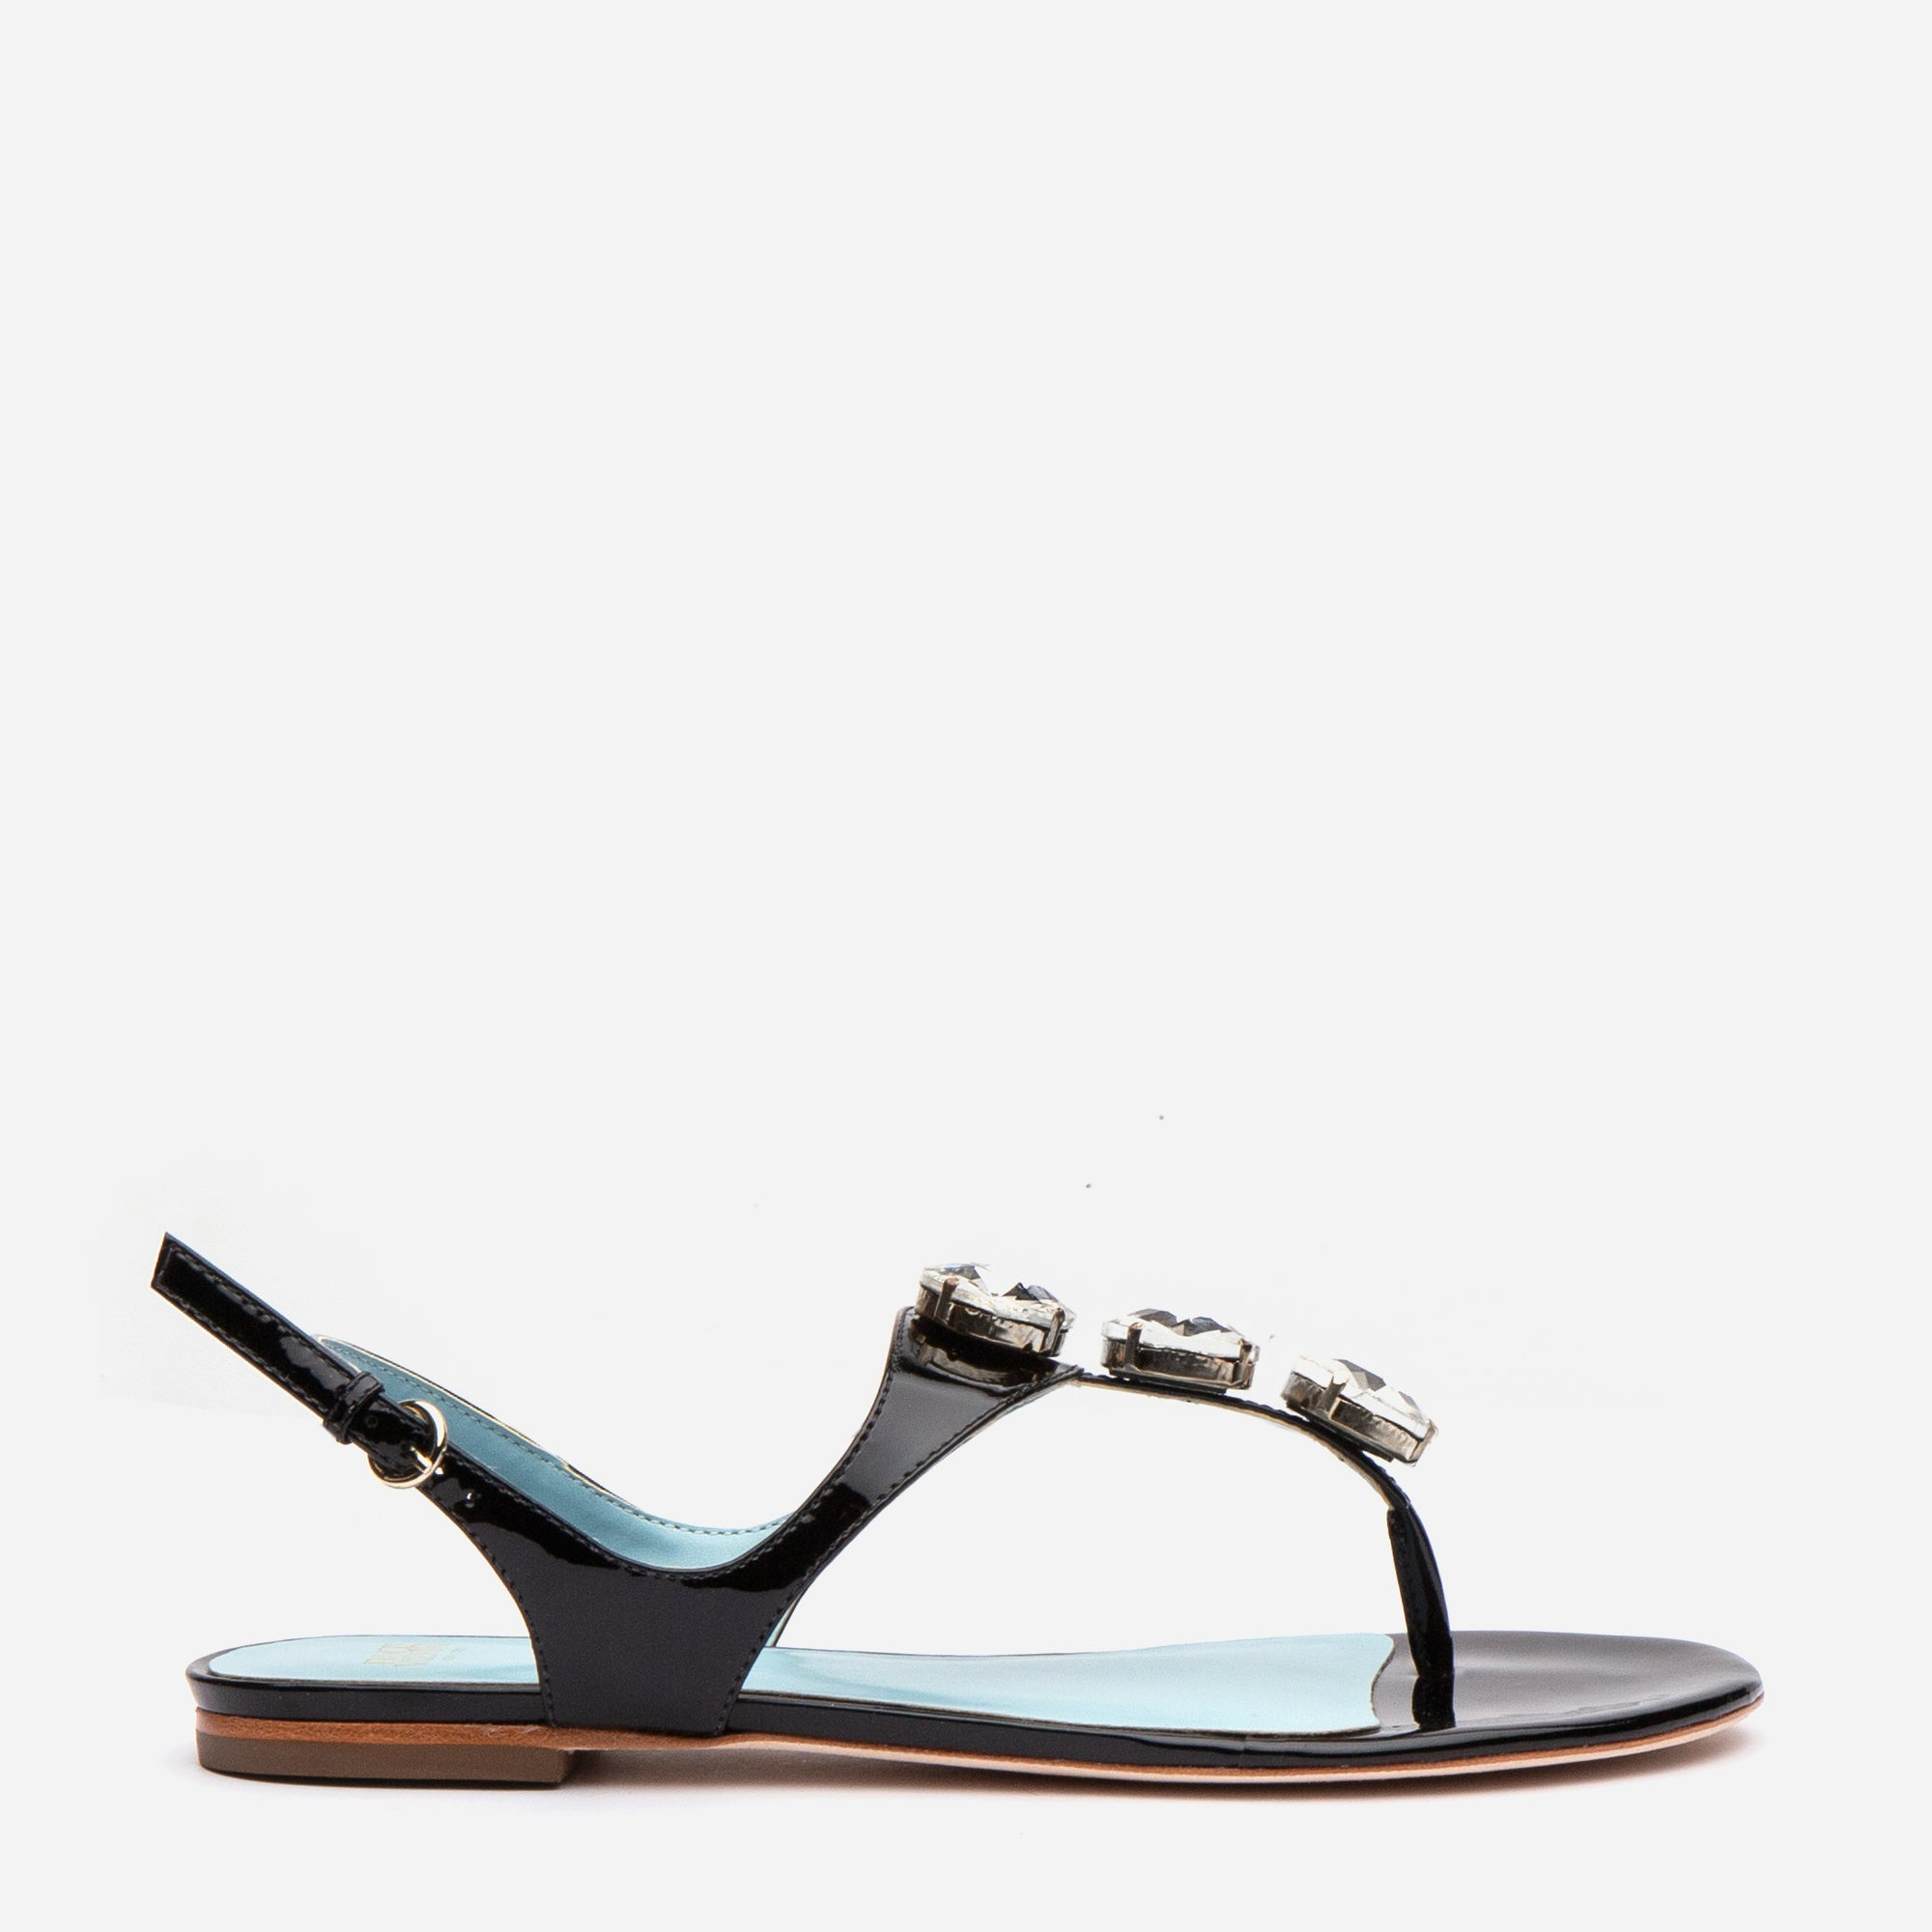 Victoria Jeweled Patent Sandal Black - Frances Valentine